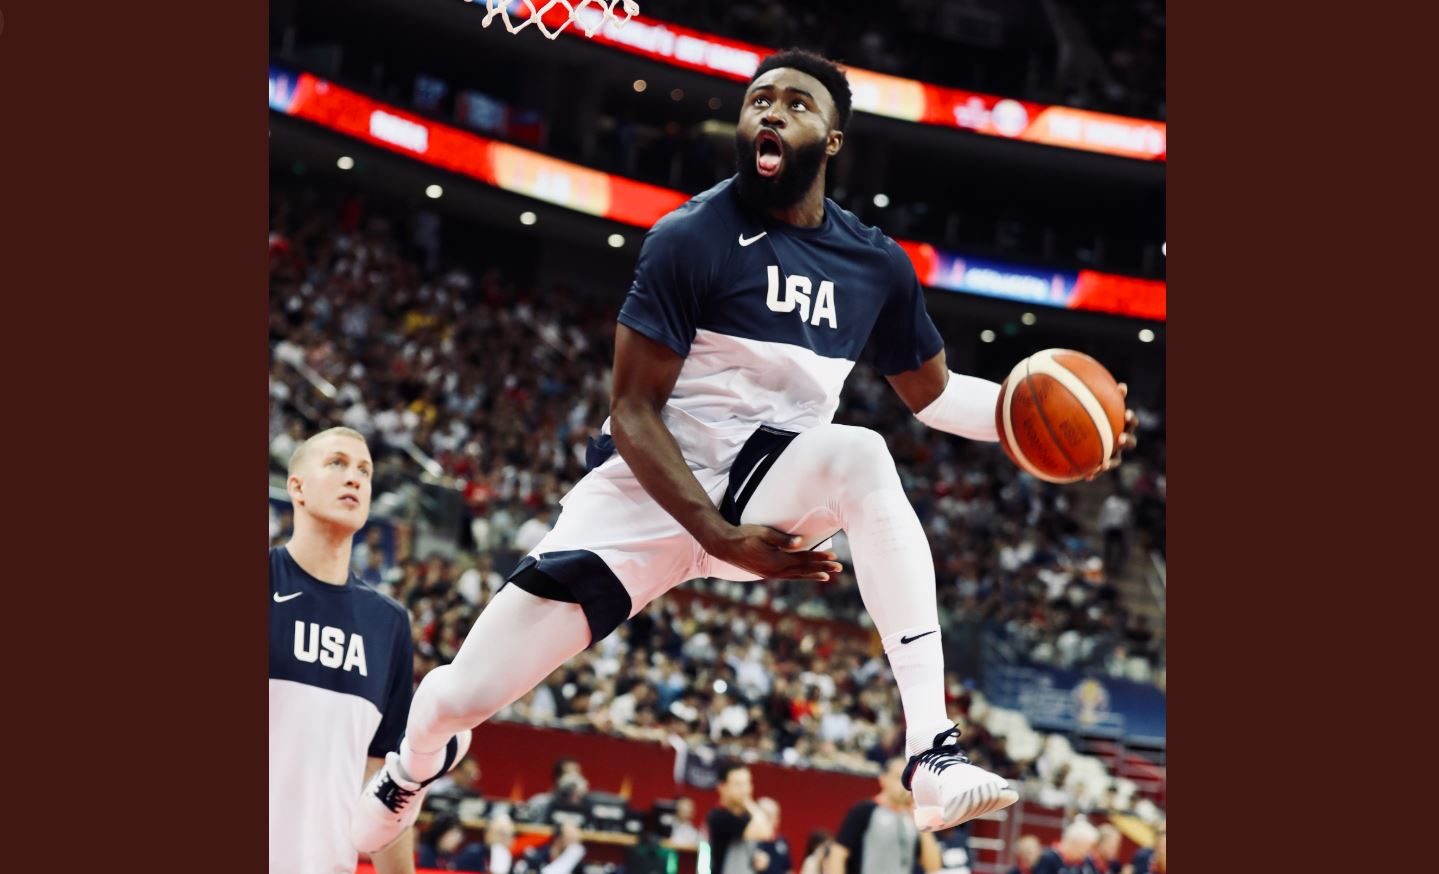 Jaylen Brown dunks all over Japan in Team USA blowout